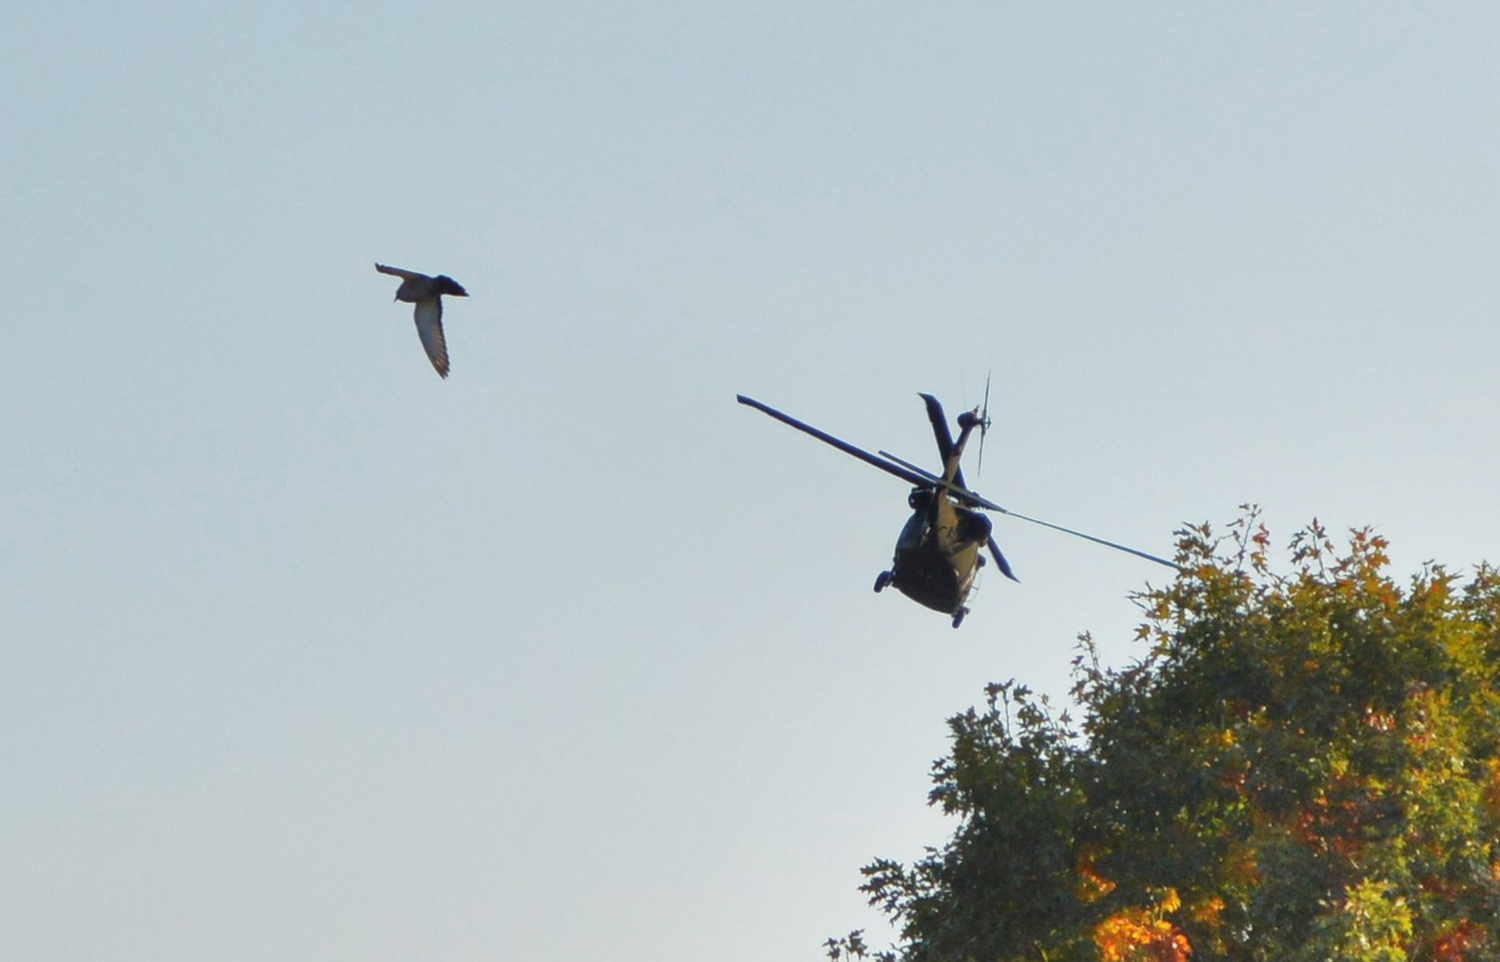 Black Hawk's up, and so is a pigeon that wisely defers to the helicopter landing near South Portland's Clark Pond, where Brian Lovering noted the convergence.